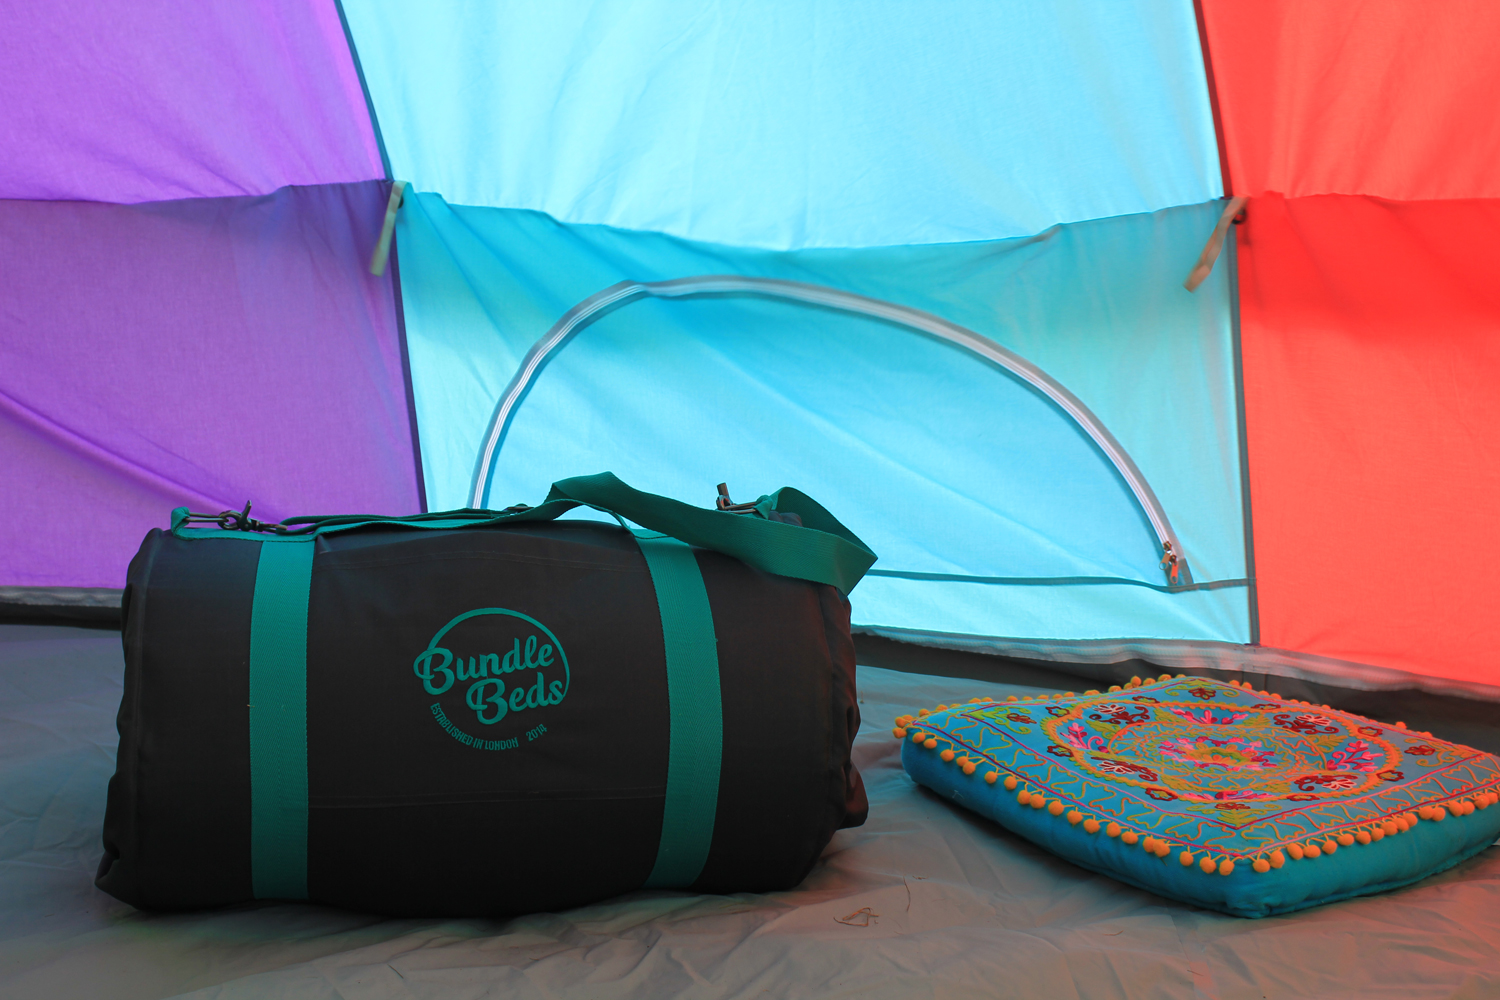 Bundle Beds perfect for camping